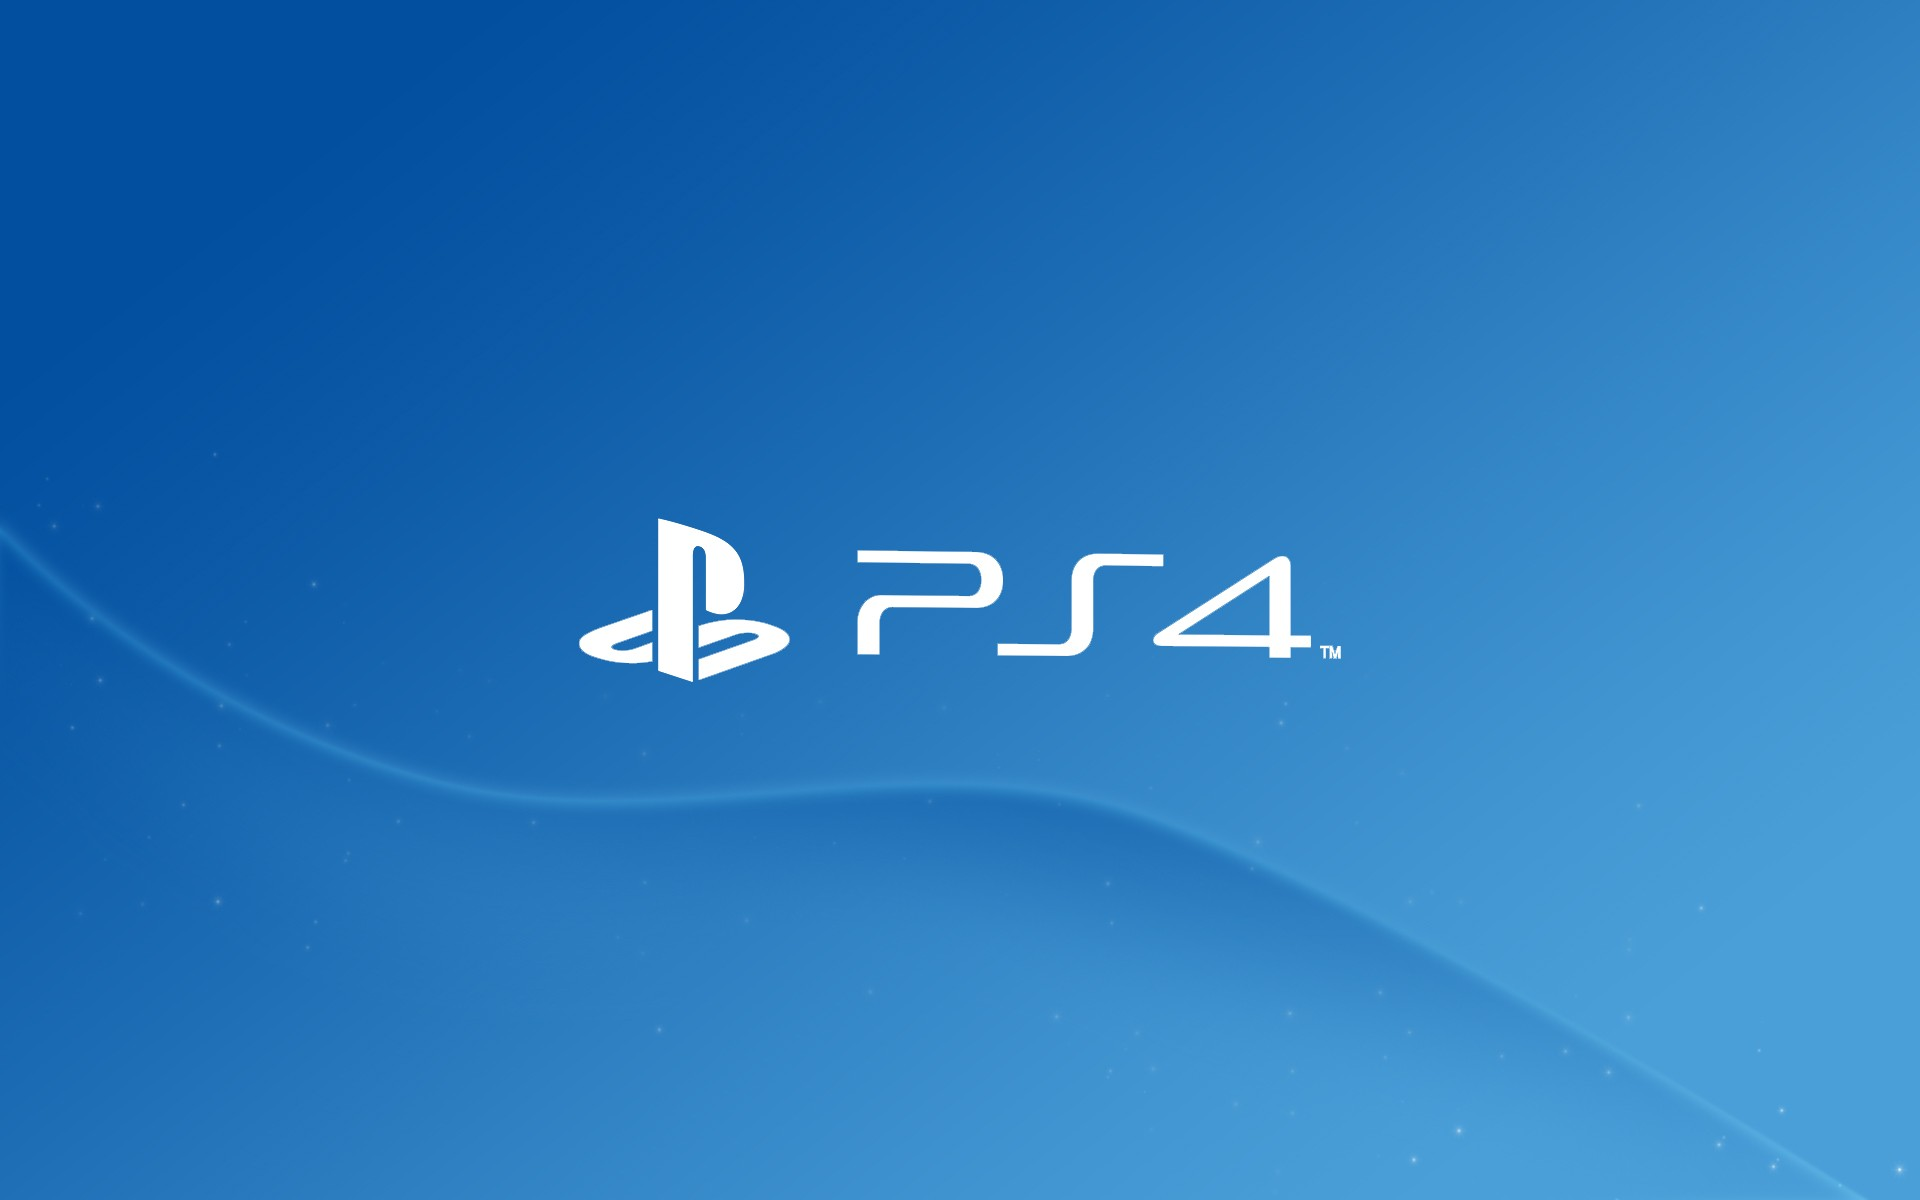 ps4 live wallpaper for android galleryimage co